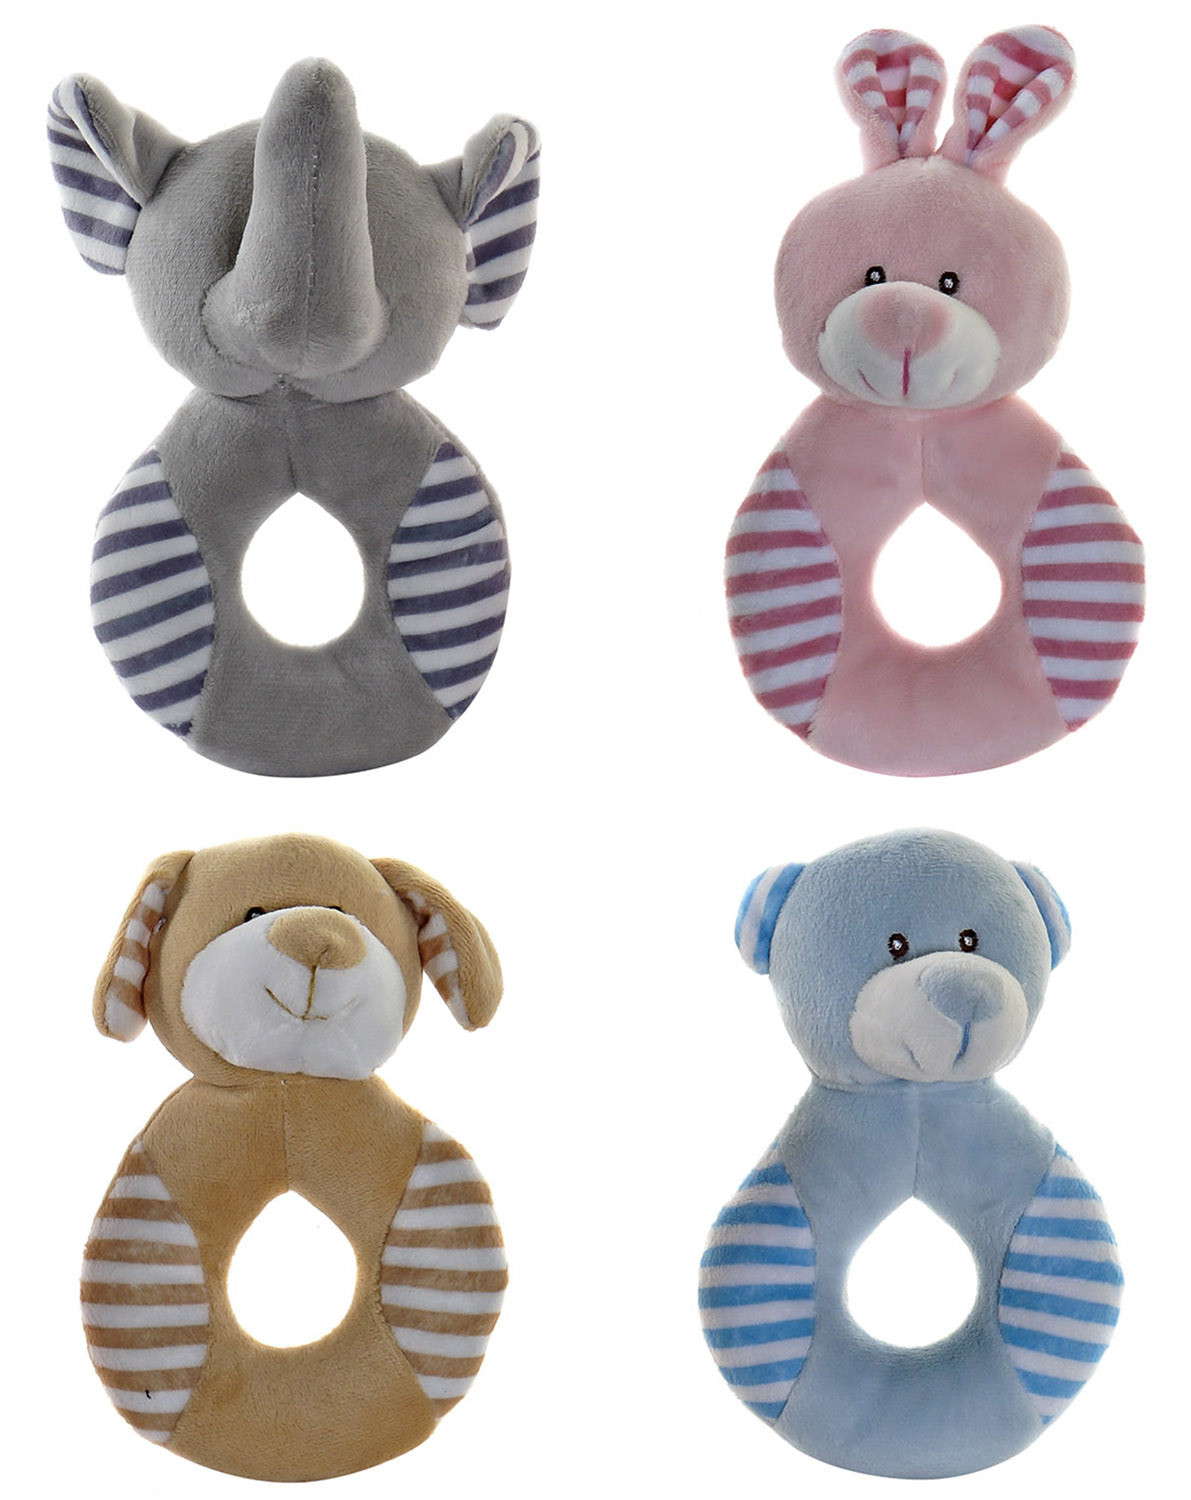 Stuffed animal Newborn Baby, made in Polyester, with design of Animals and Child style, Baby 10x5x15cm - Home and More